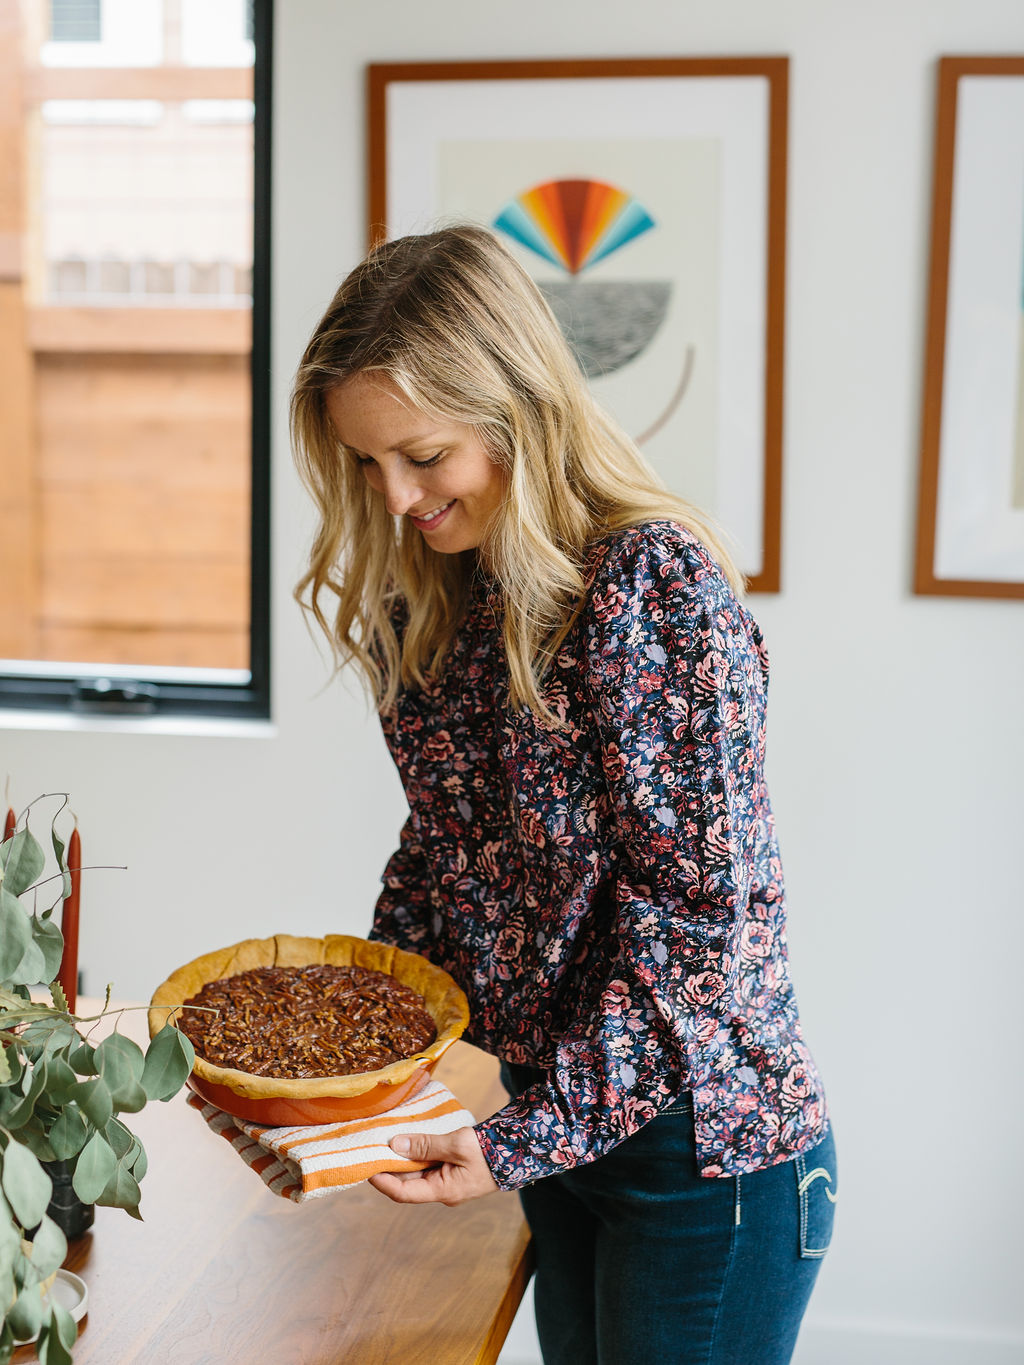 Placing the bourbon and chocolate pecan pie on a table